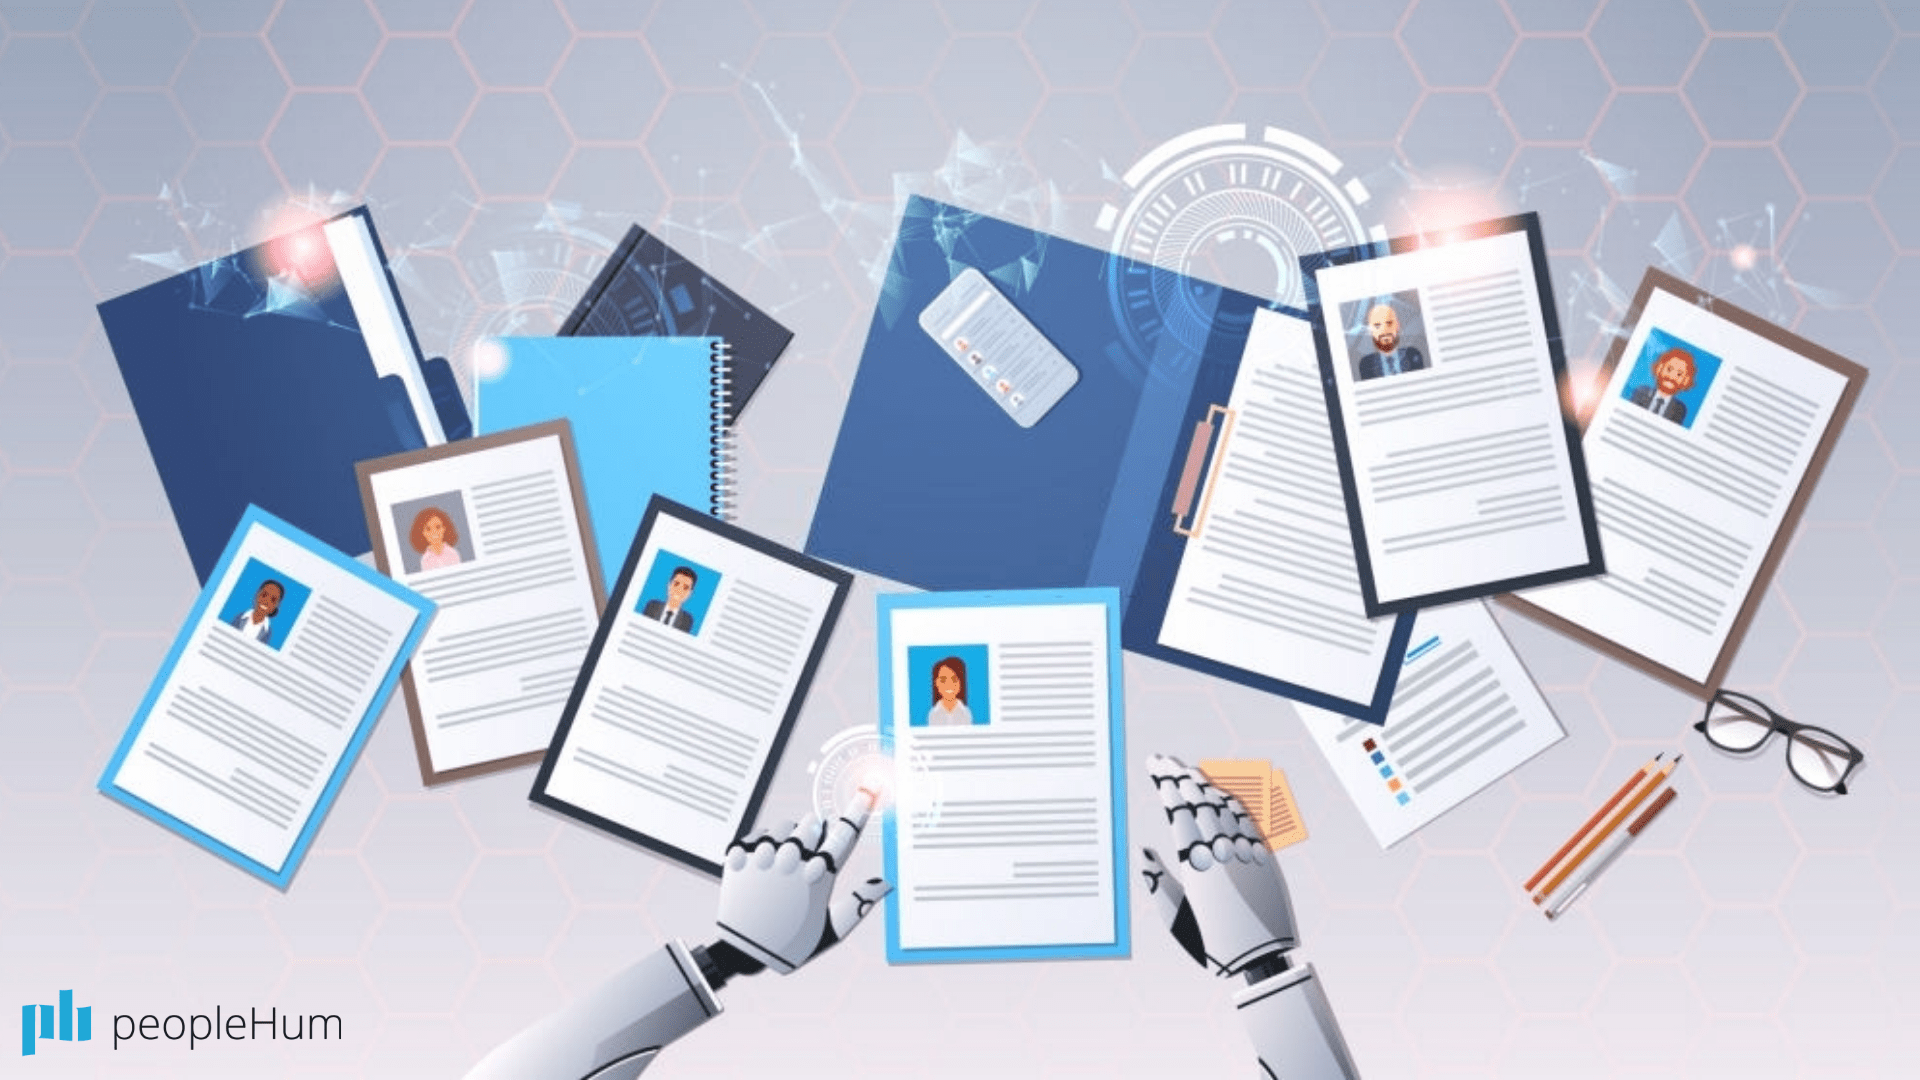 This company is using AI to hire, fire and promote employees.